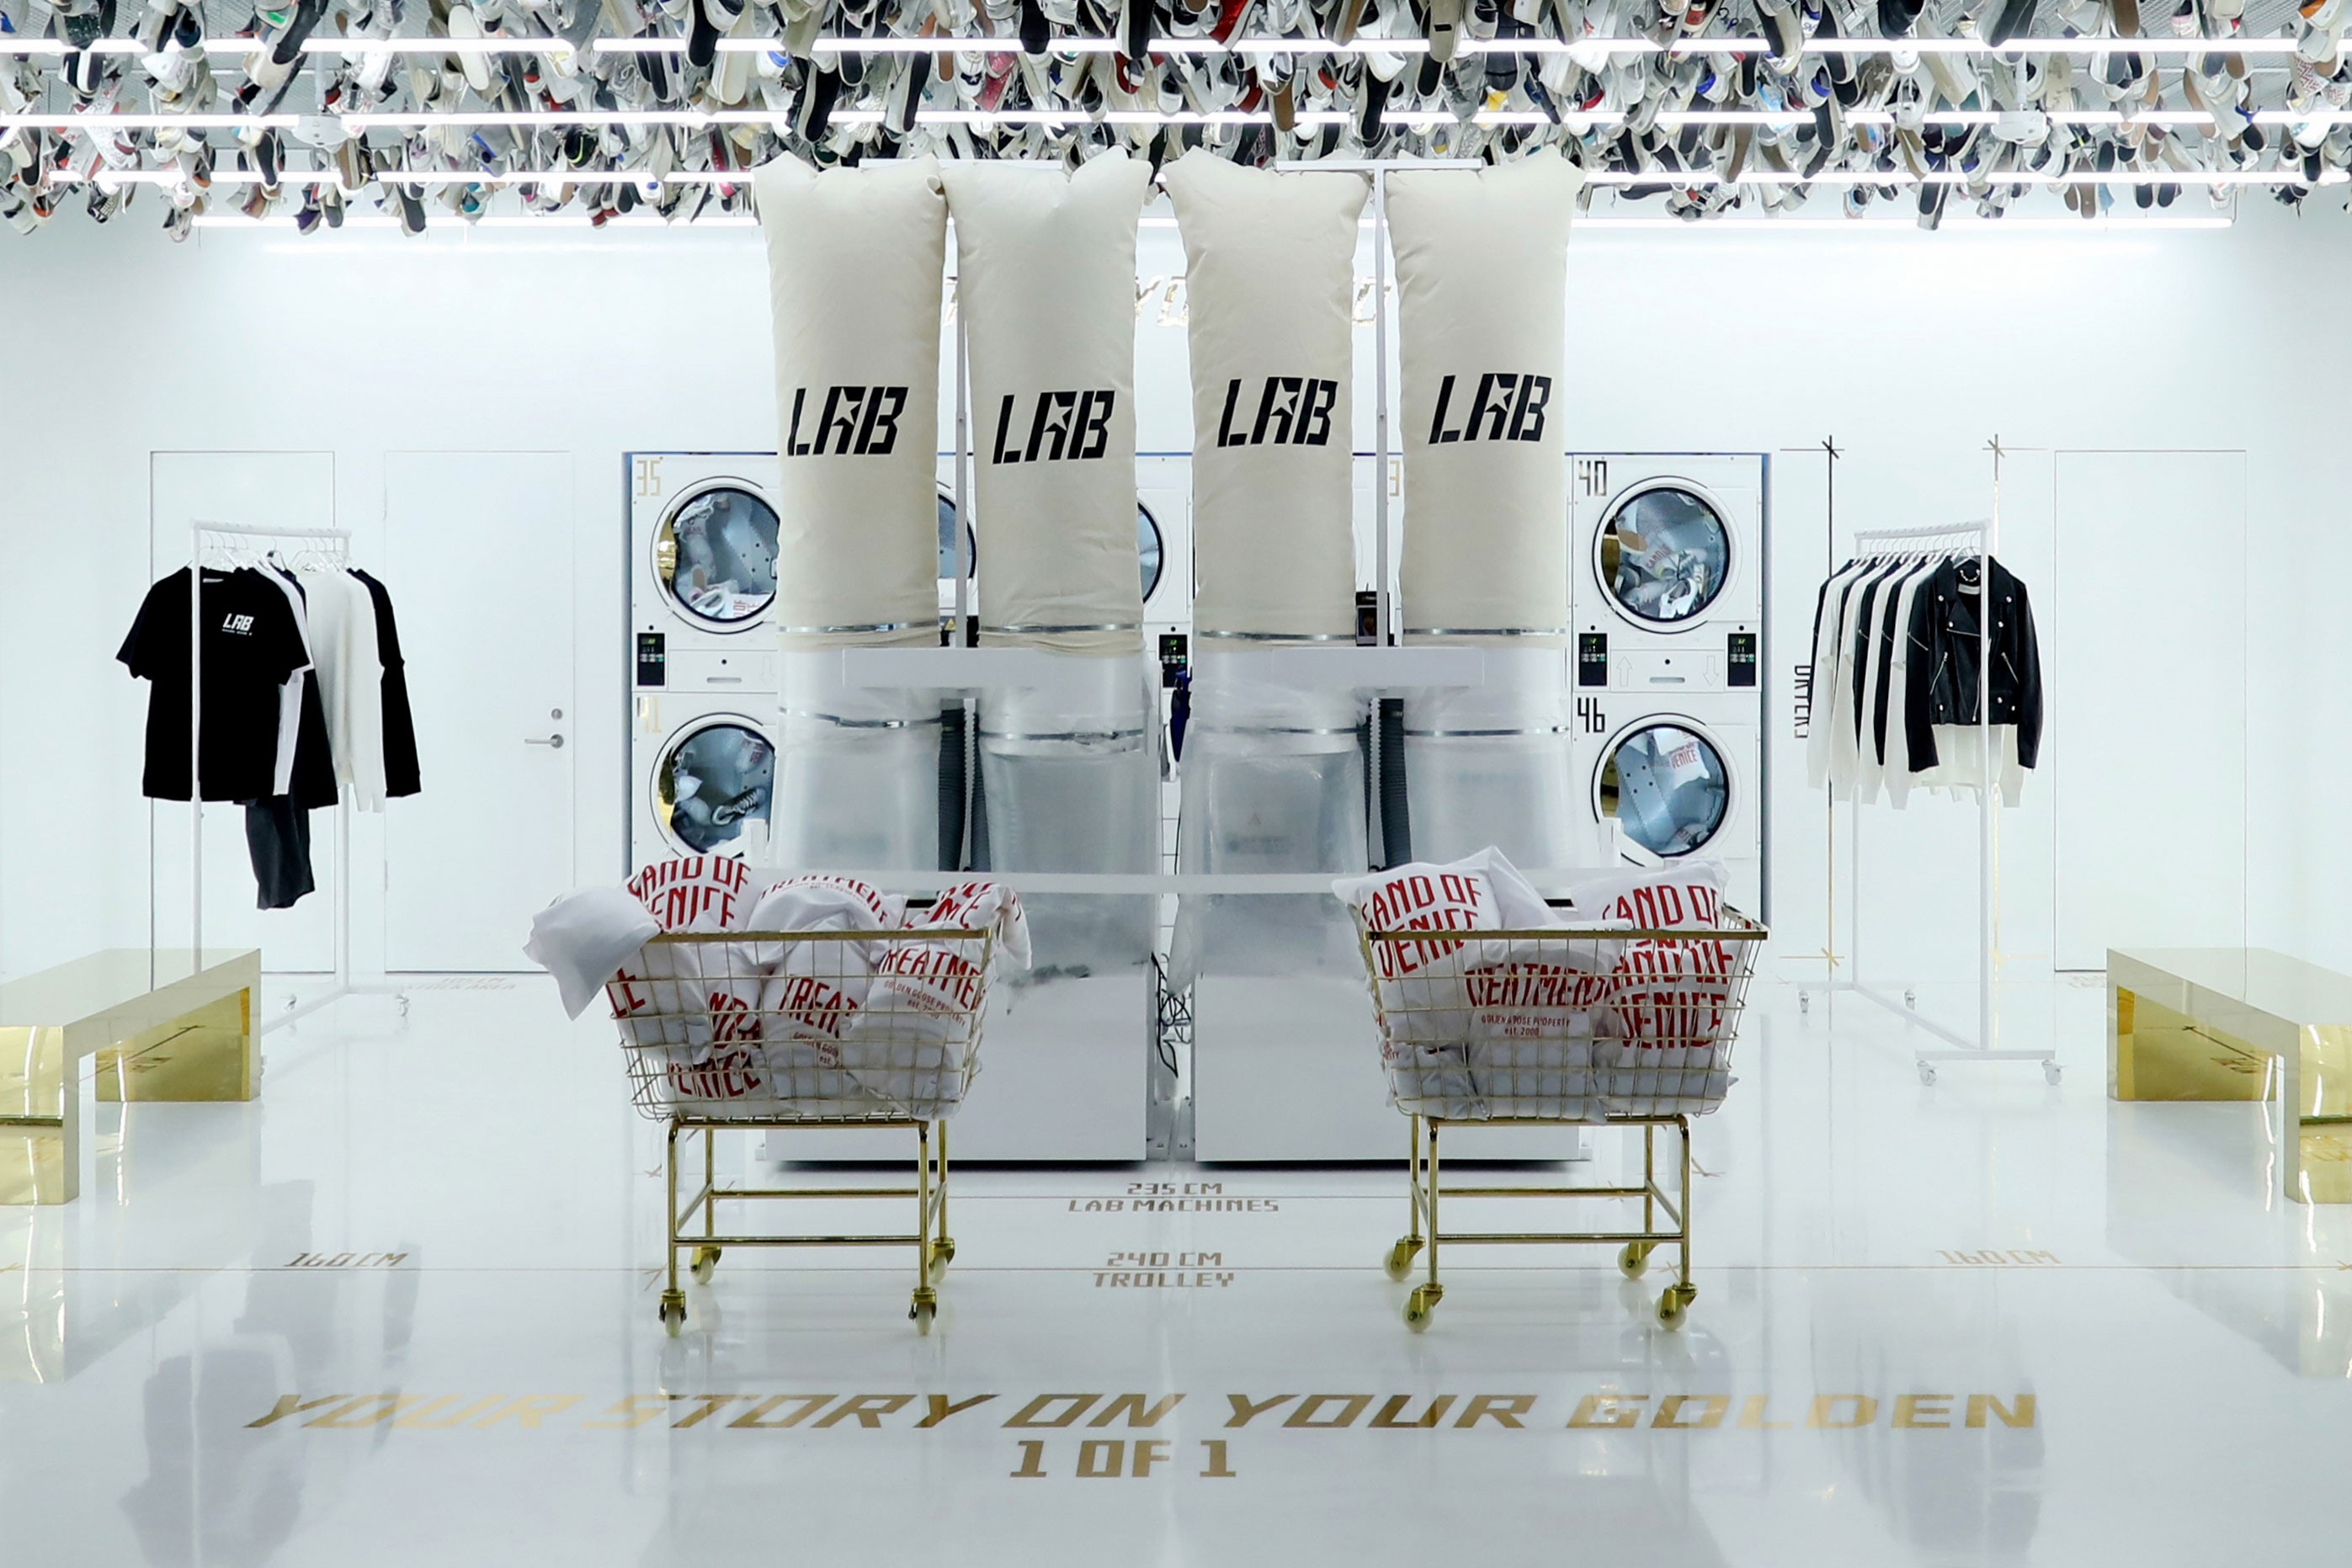 Golden Goose's Lab store located inside Beijing's SKP South luxury shopping mall.